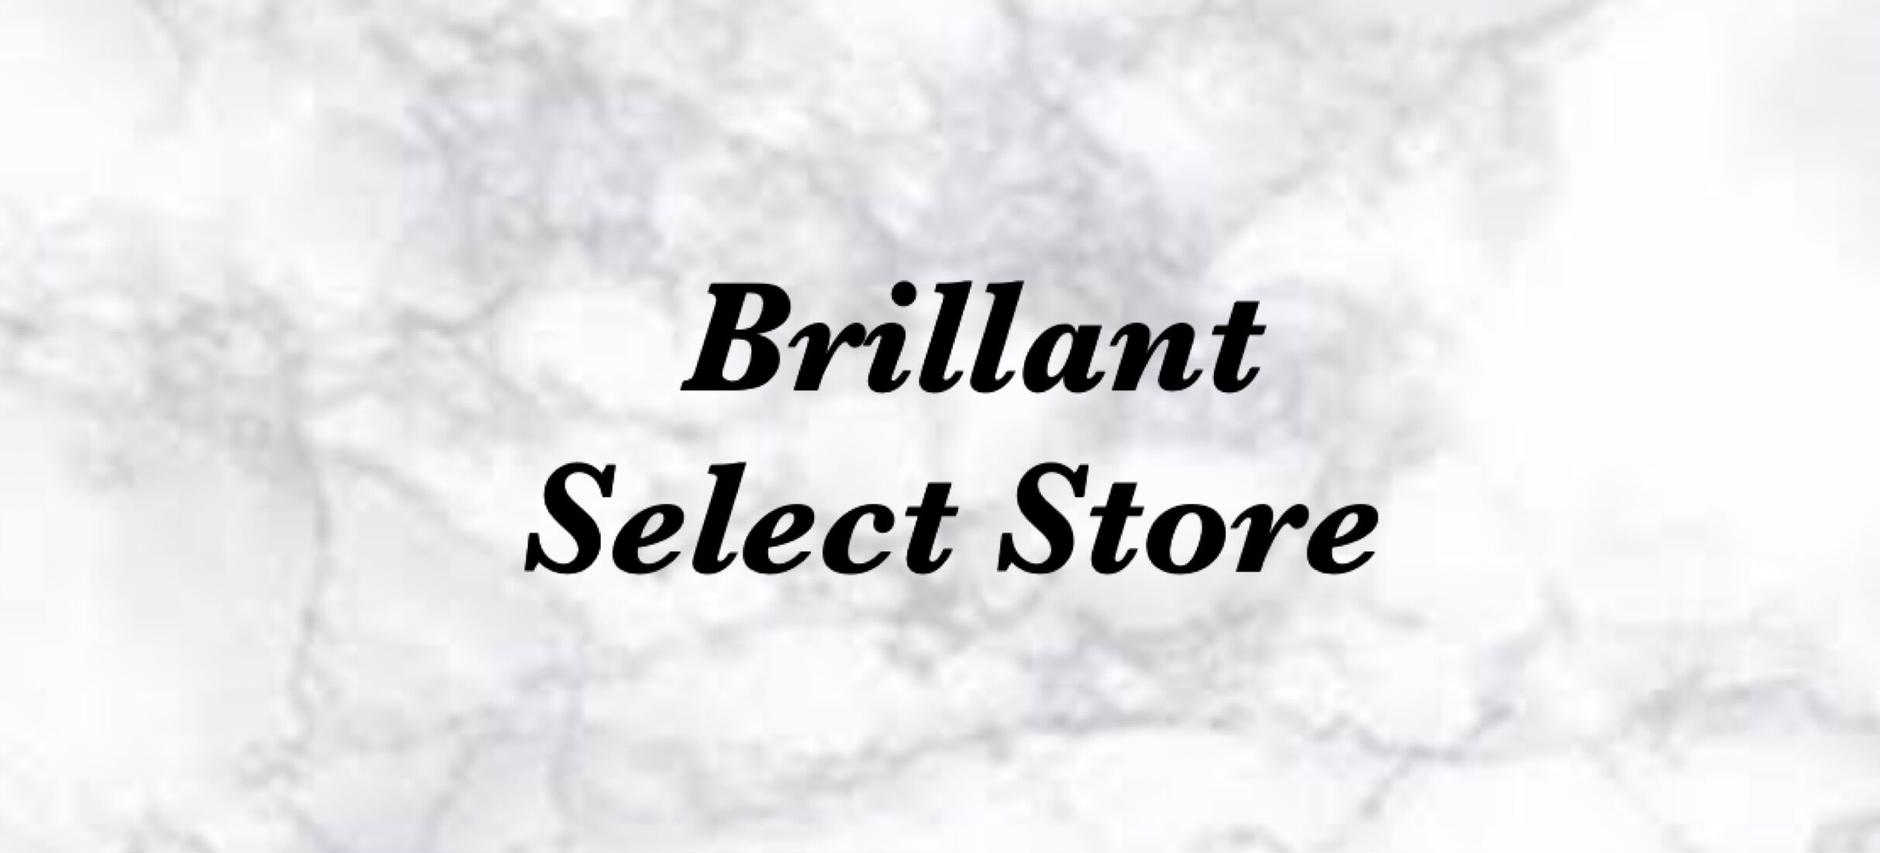 BrillantSelect Store